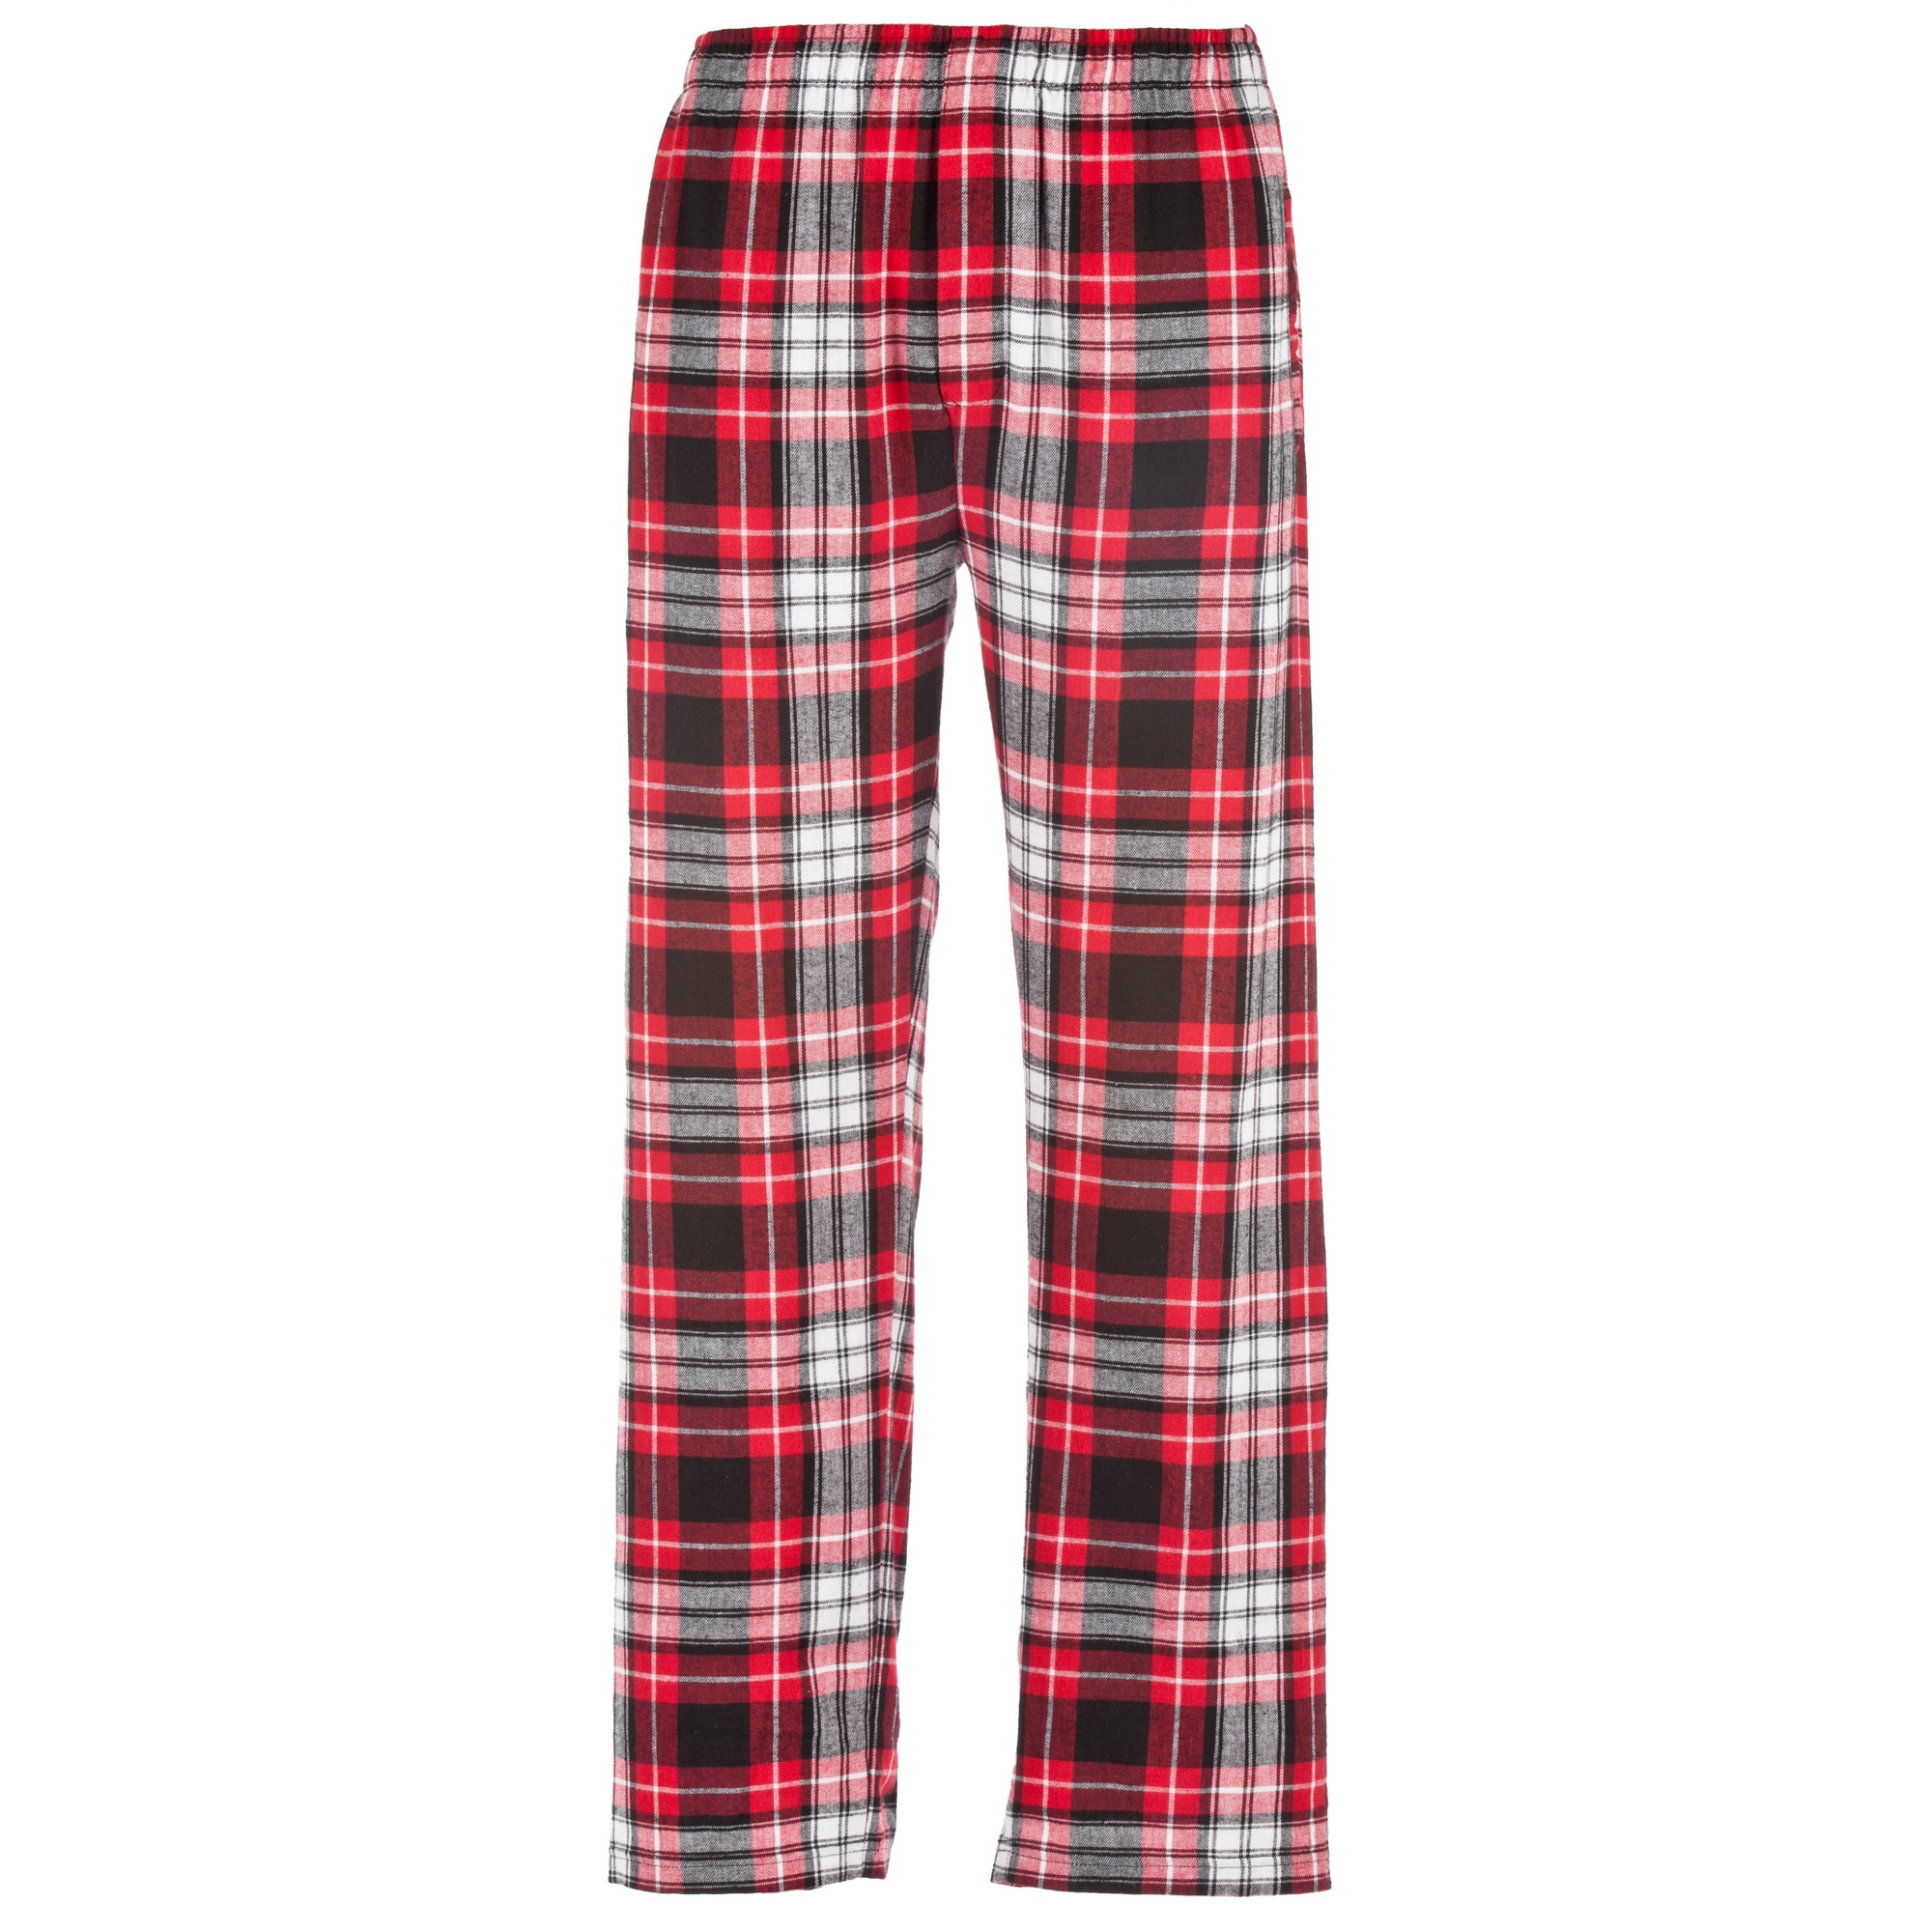 These soft and comfortable flannel pajamas have a classic notched collar, button-front top and patch pocket. The easy-fitting bottoms have an elasticized drawstring waist and button fly/5(98).